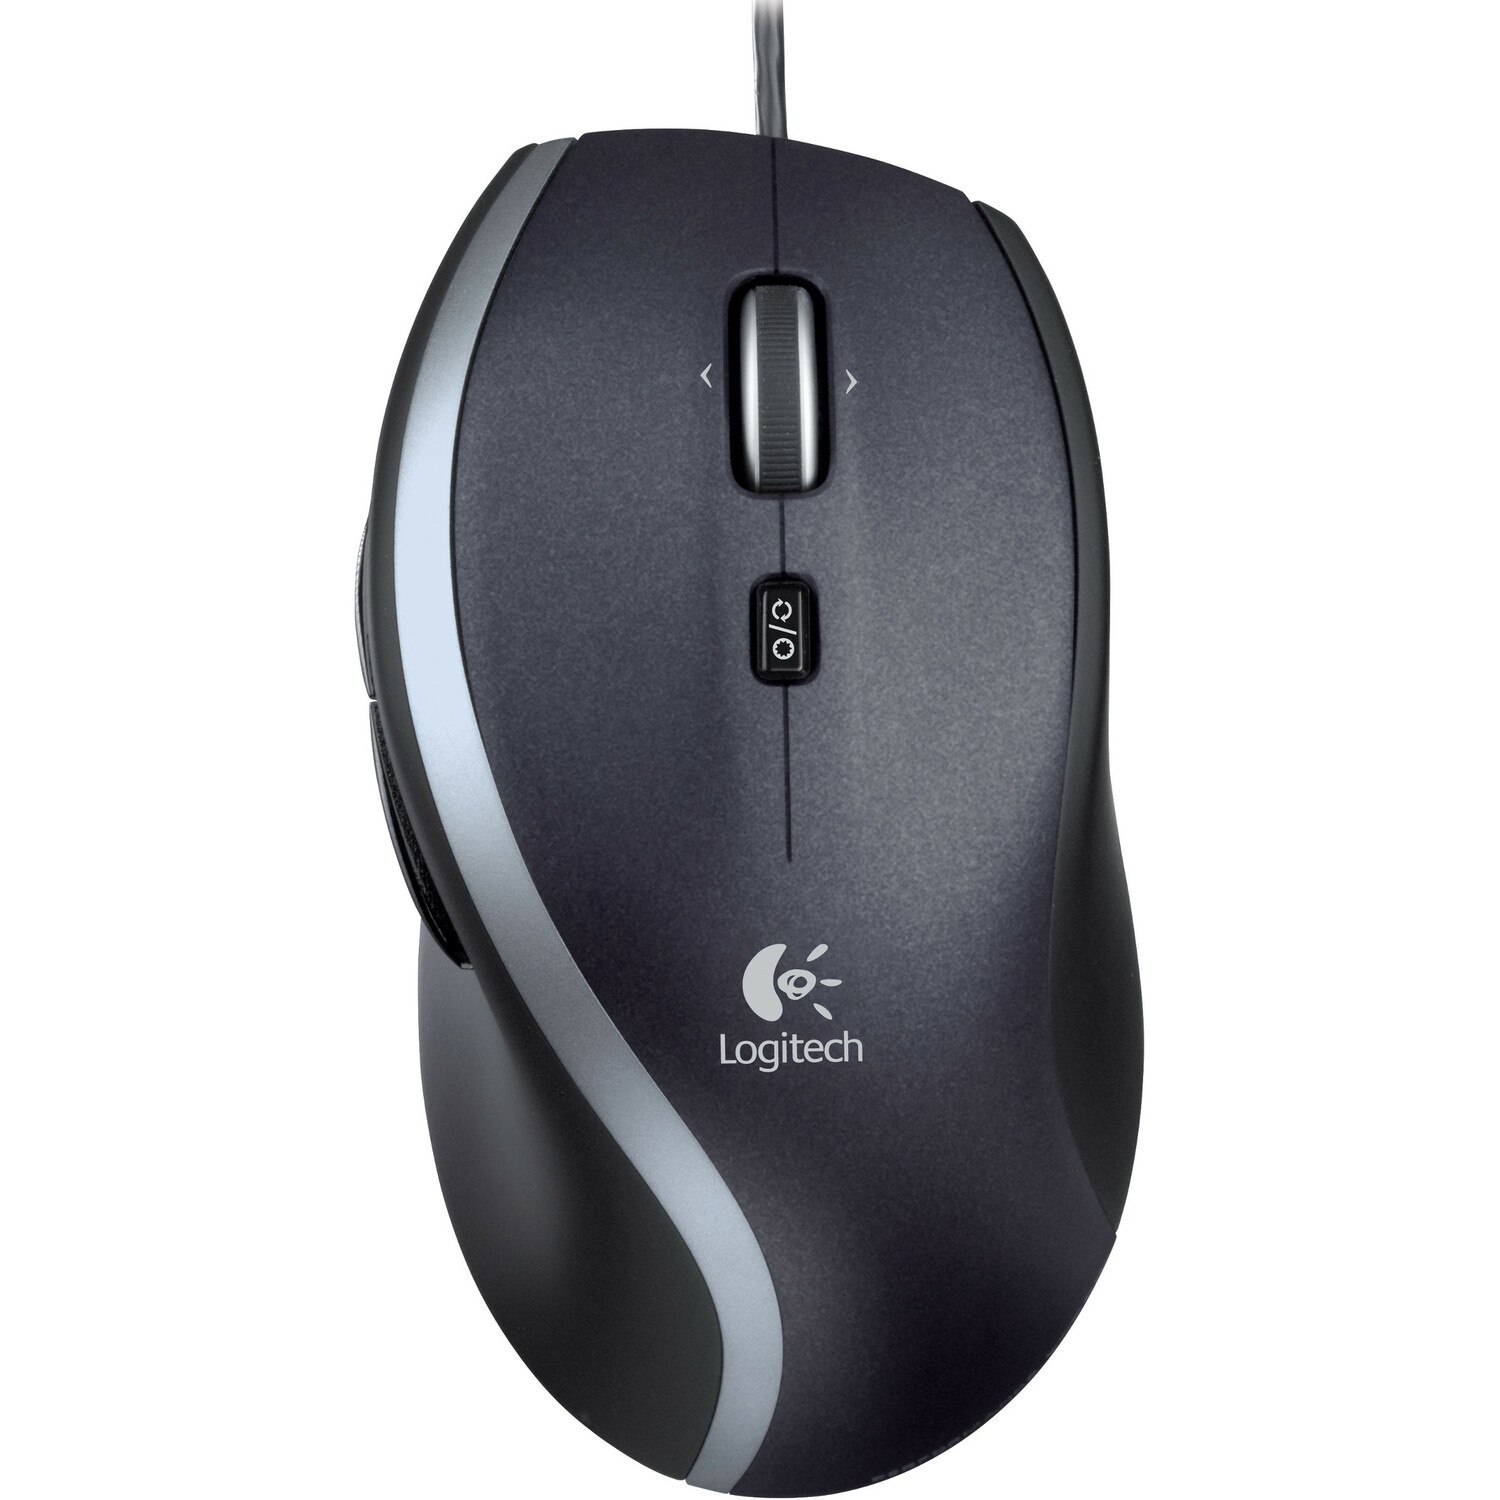 Logitech M500 Mouse - Laser Wired